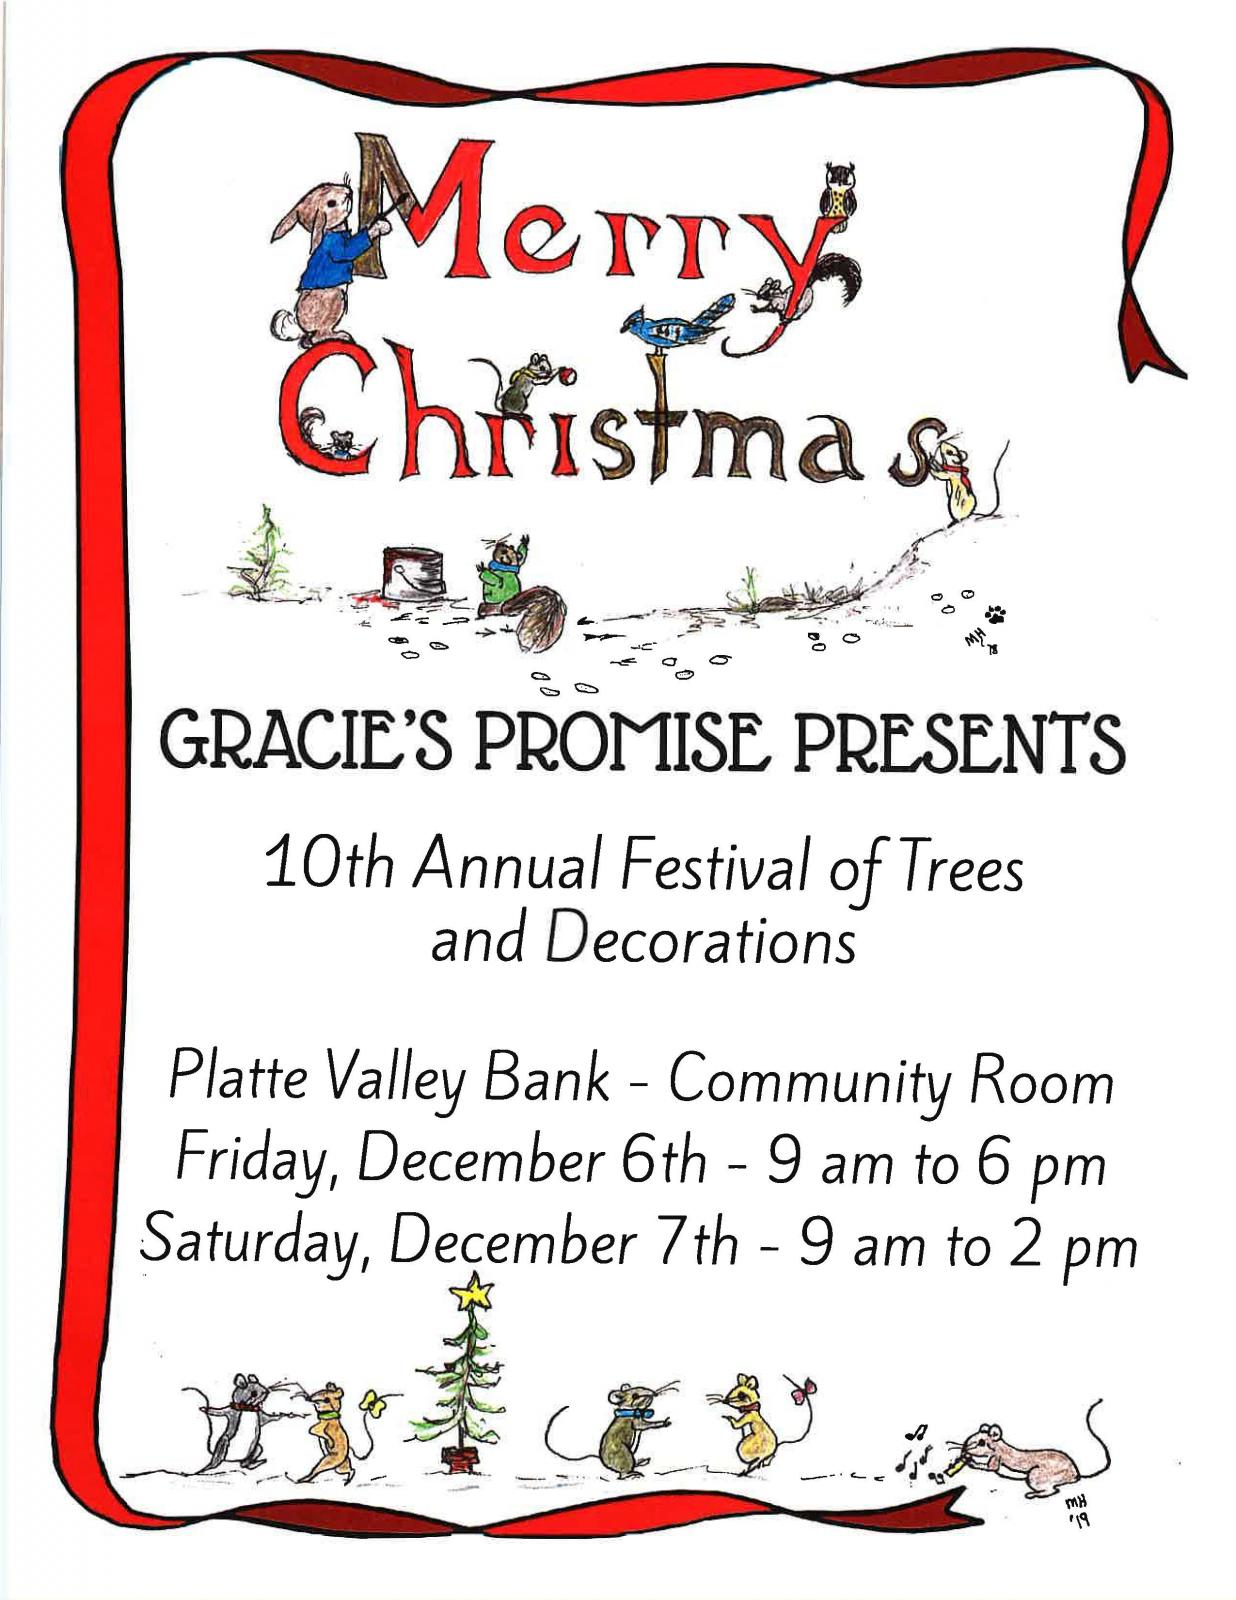 Gracie's Promise Festival of Trees Photo